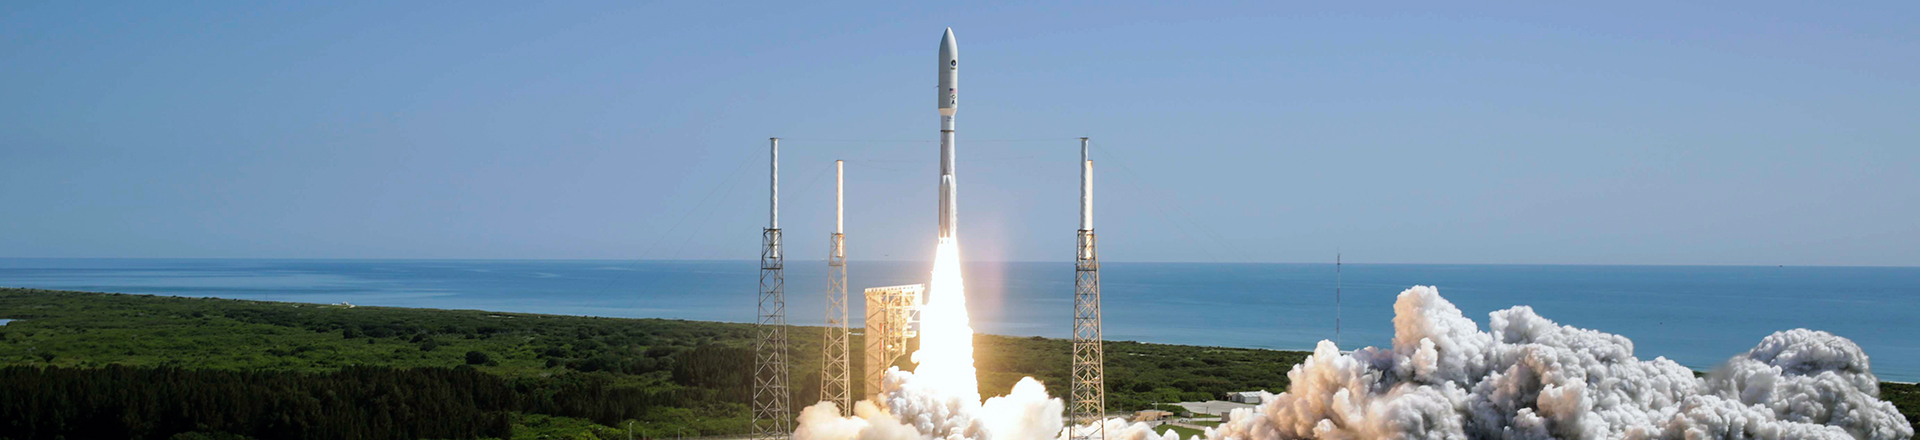 wp-band-image-atlas-V-launch-1920×440-102017